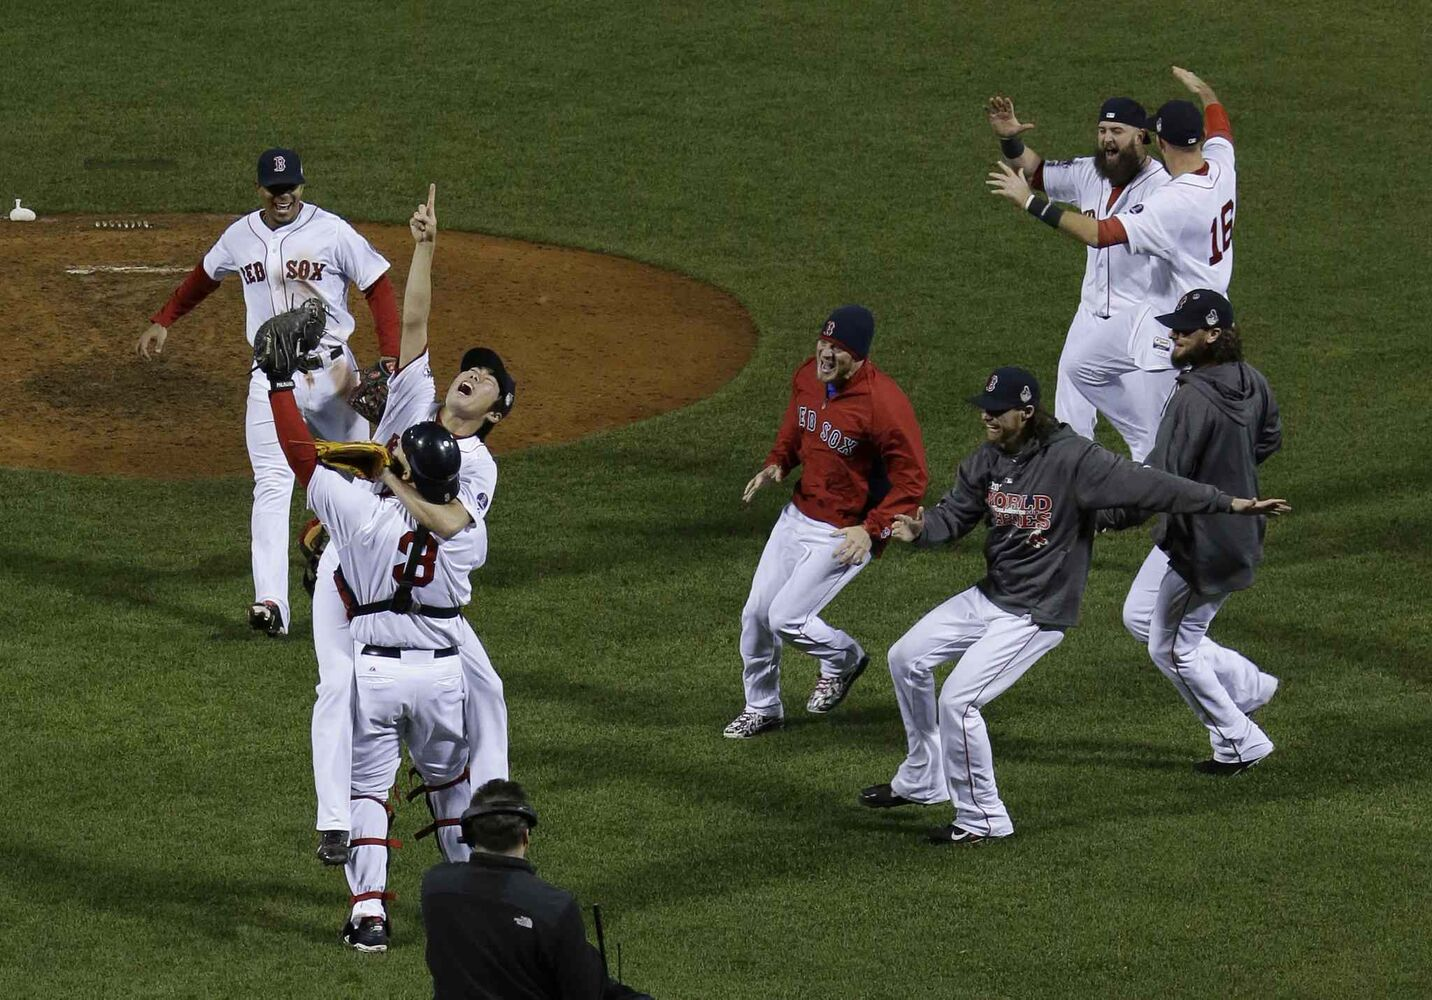 Boston Red Sox relief pitcher Koji Uehara (pointing skyward) jumps into David Ross's arms after defeating the St. Louis Cardinals in Game 6 of baseball's World Series Wednesday in Boston, Mass. The Red Sox won 6-1 to win the series. (Matt Slocum / The Associated Press)